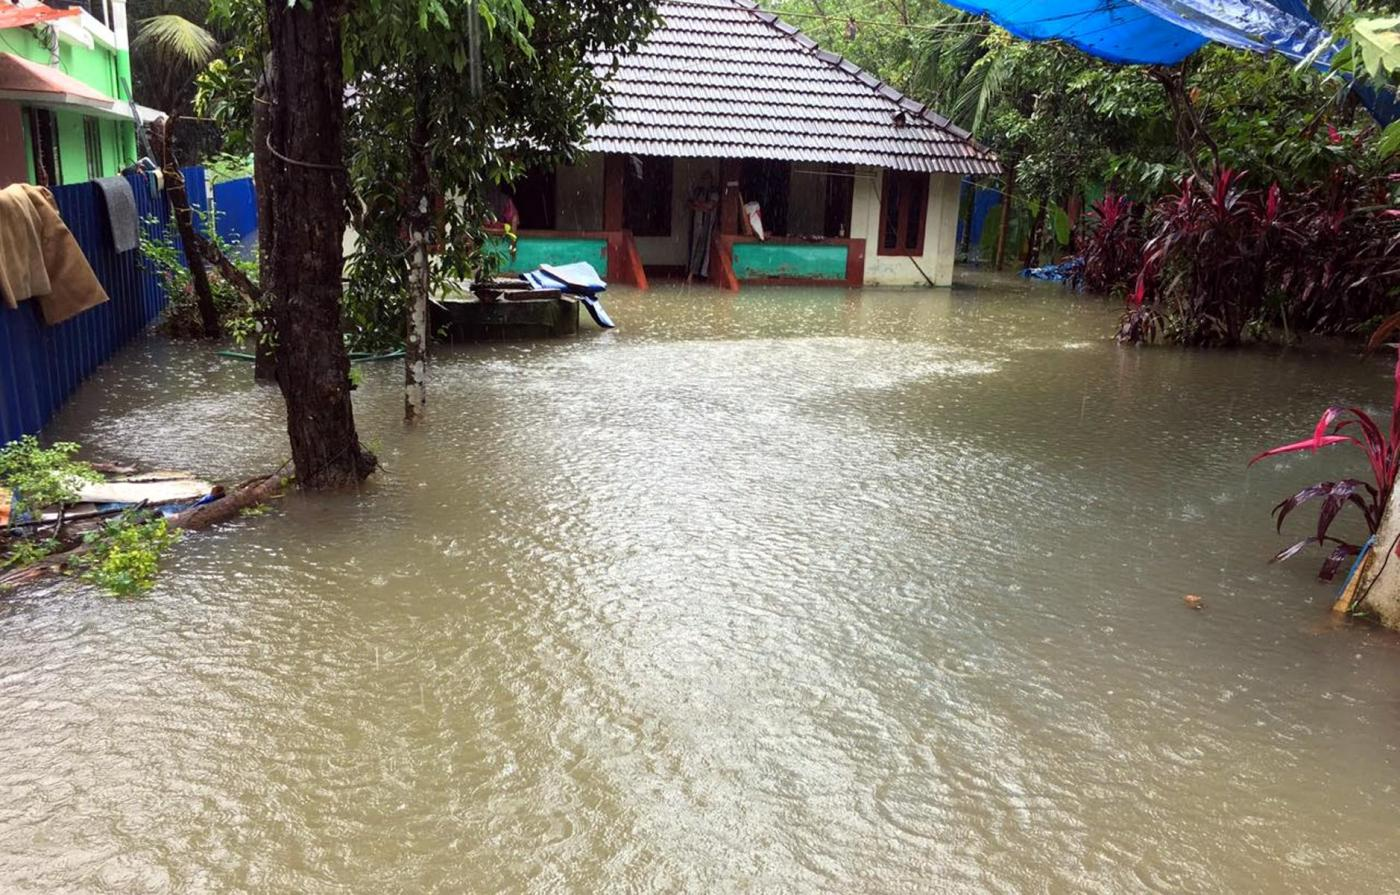 Kottayam : A view of a flooded house at Kottayam of Kerala after heavy rains lashed the city,on July 19, 2018. (Photo: IANS) by .